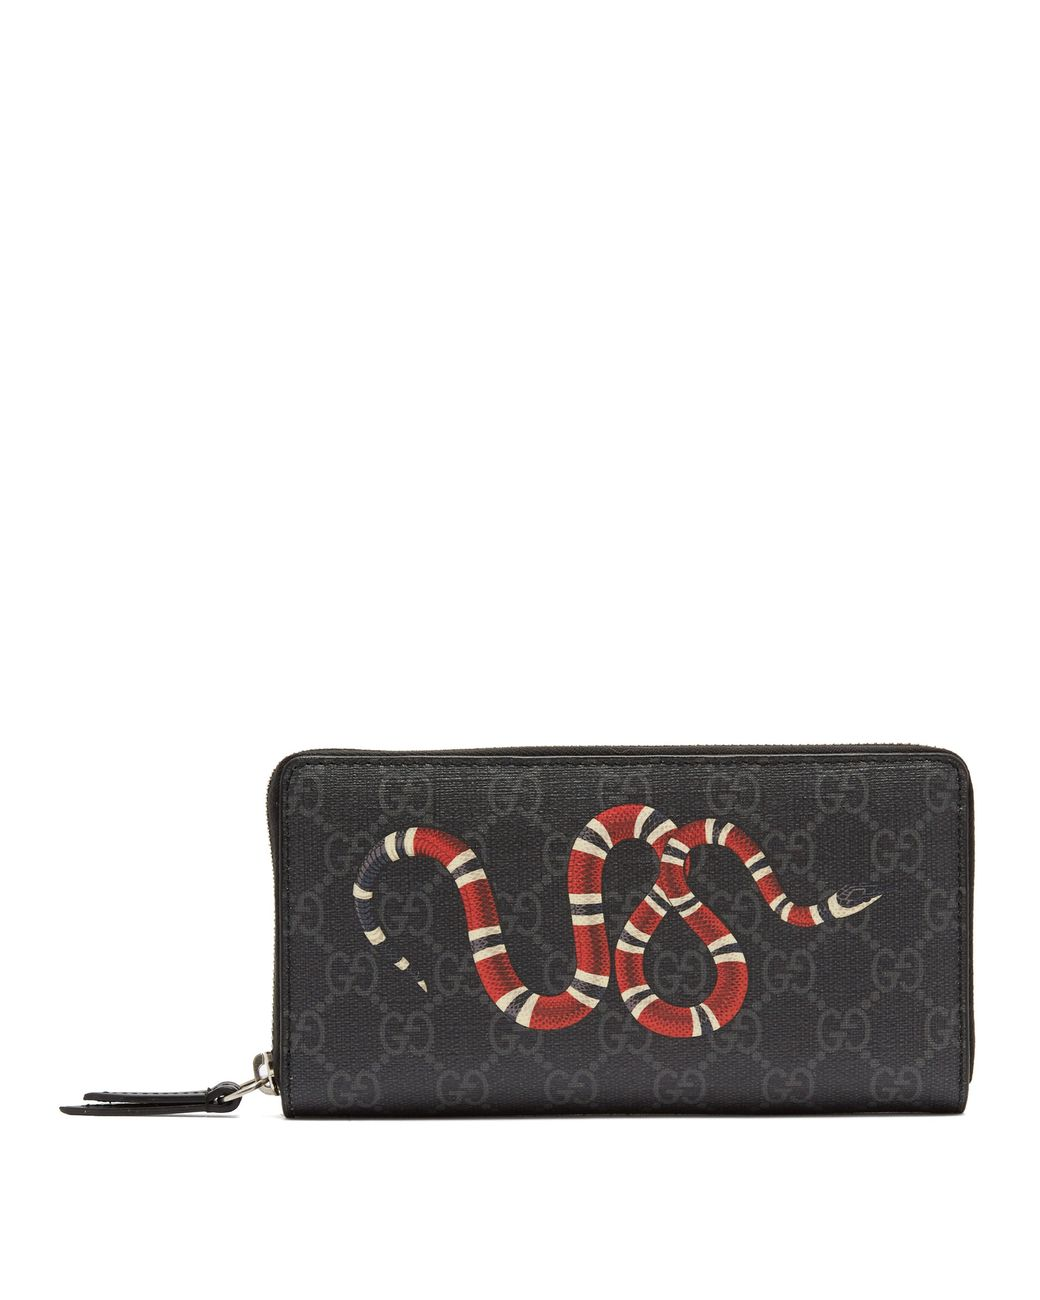 213248cdf8f Gucci Kingsnake Zip Around Leather Wallet in Black for Men - Lyst